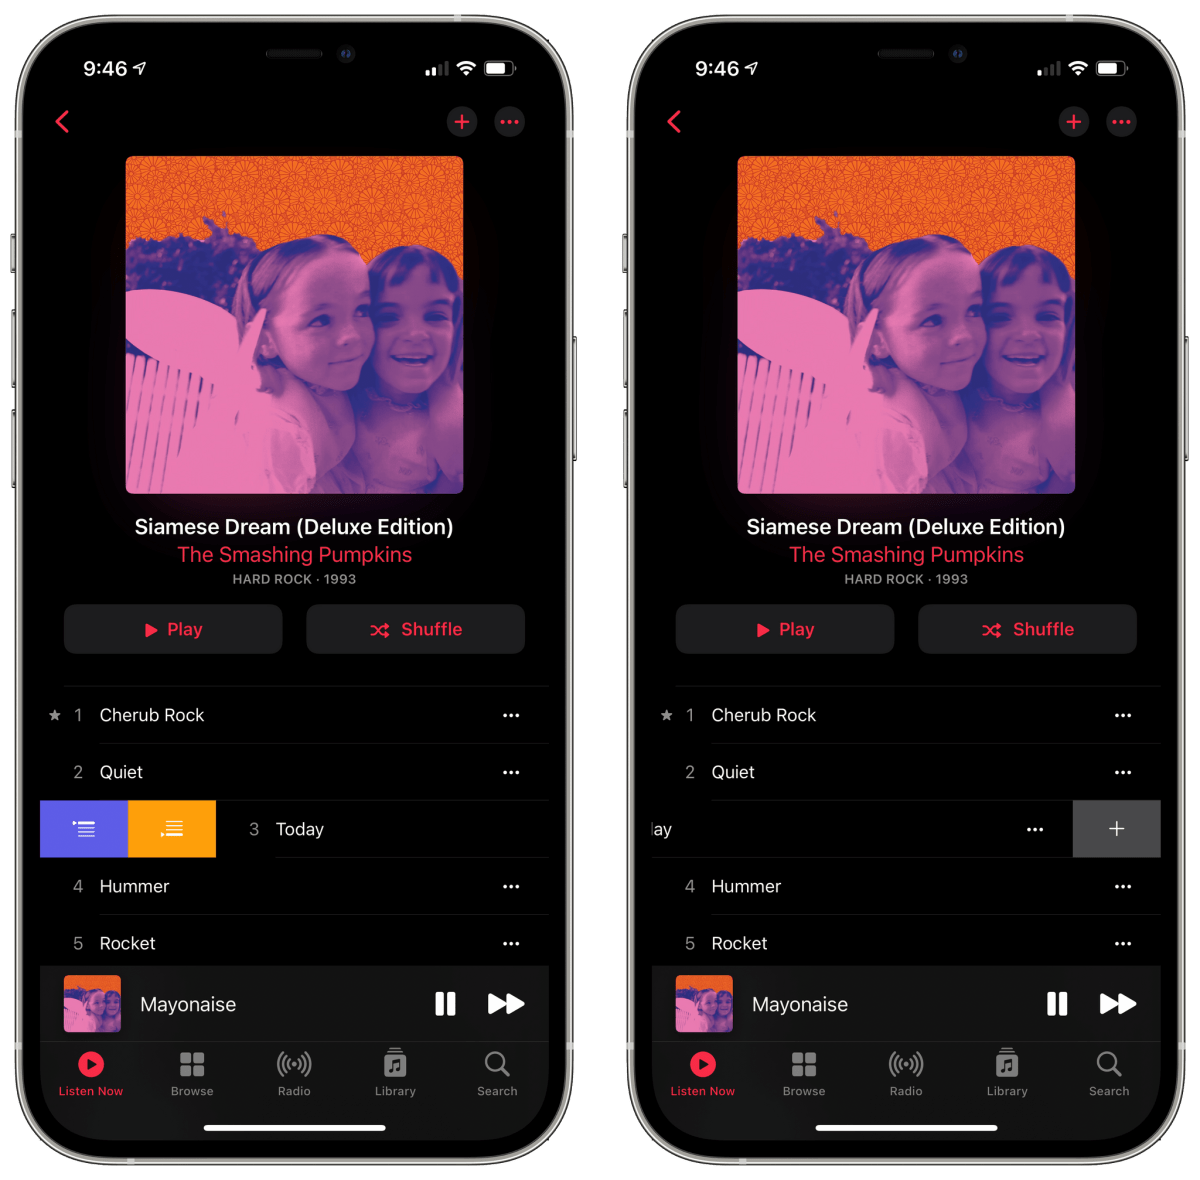 New swipe gestures in the Music app for iOS 14.5.